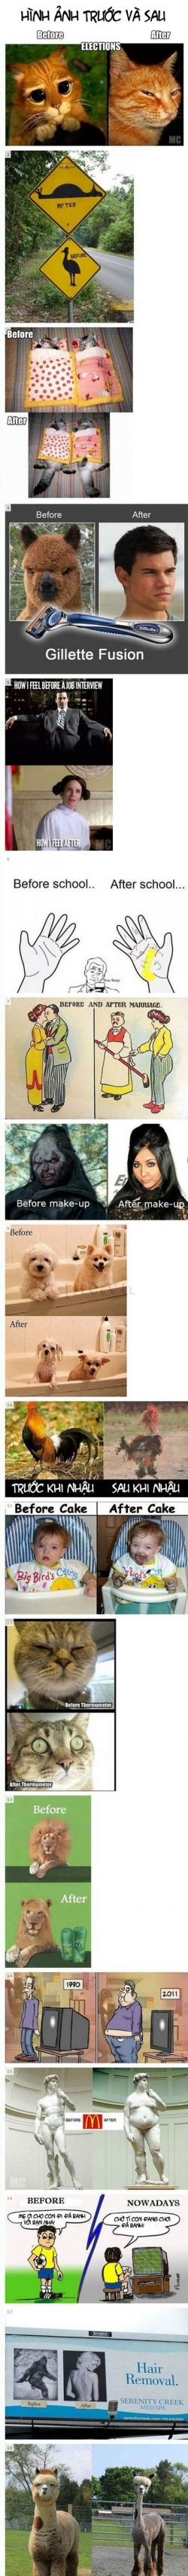 Funny photos - Before - after